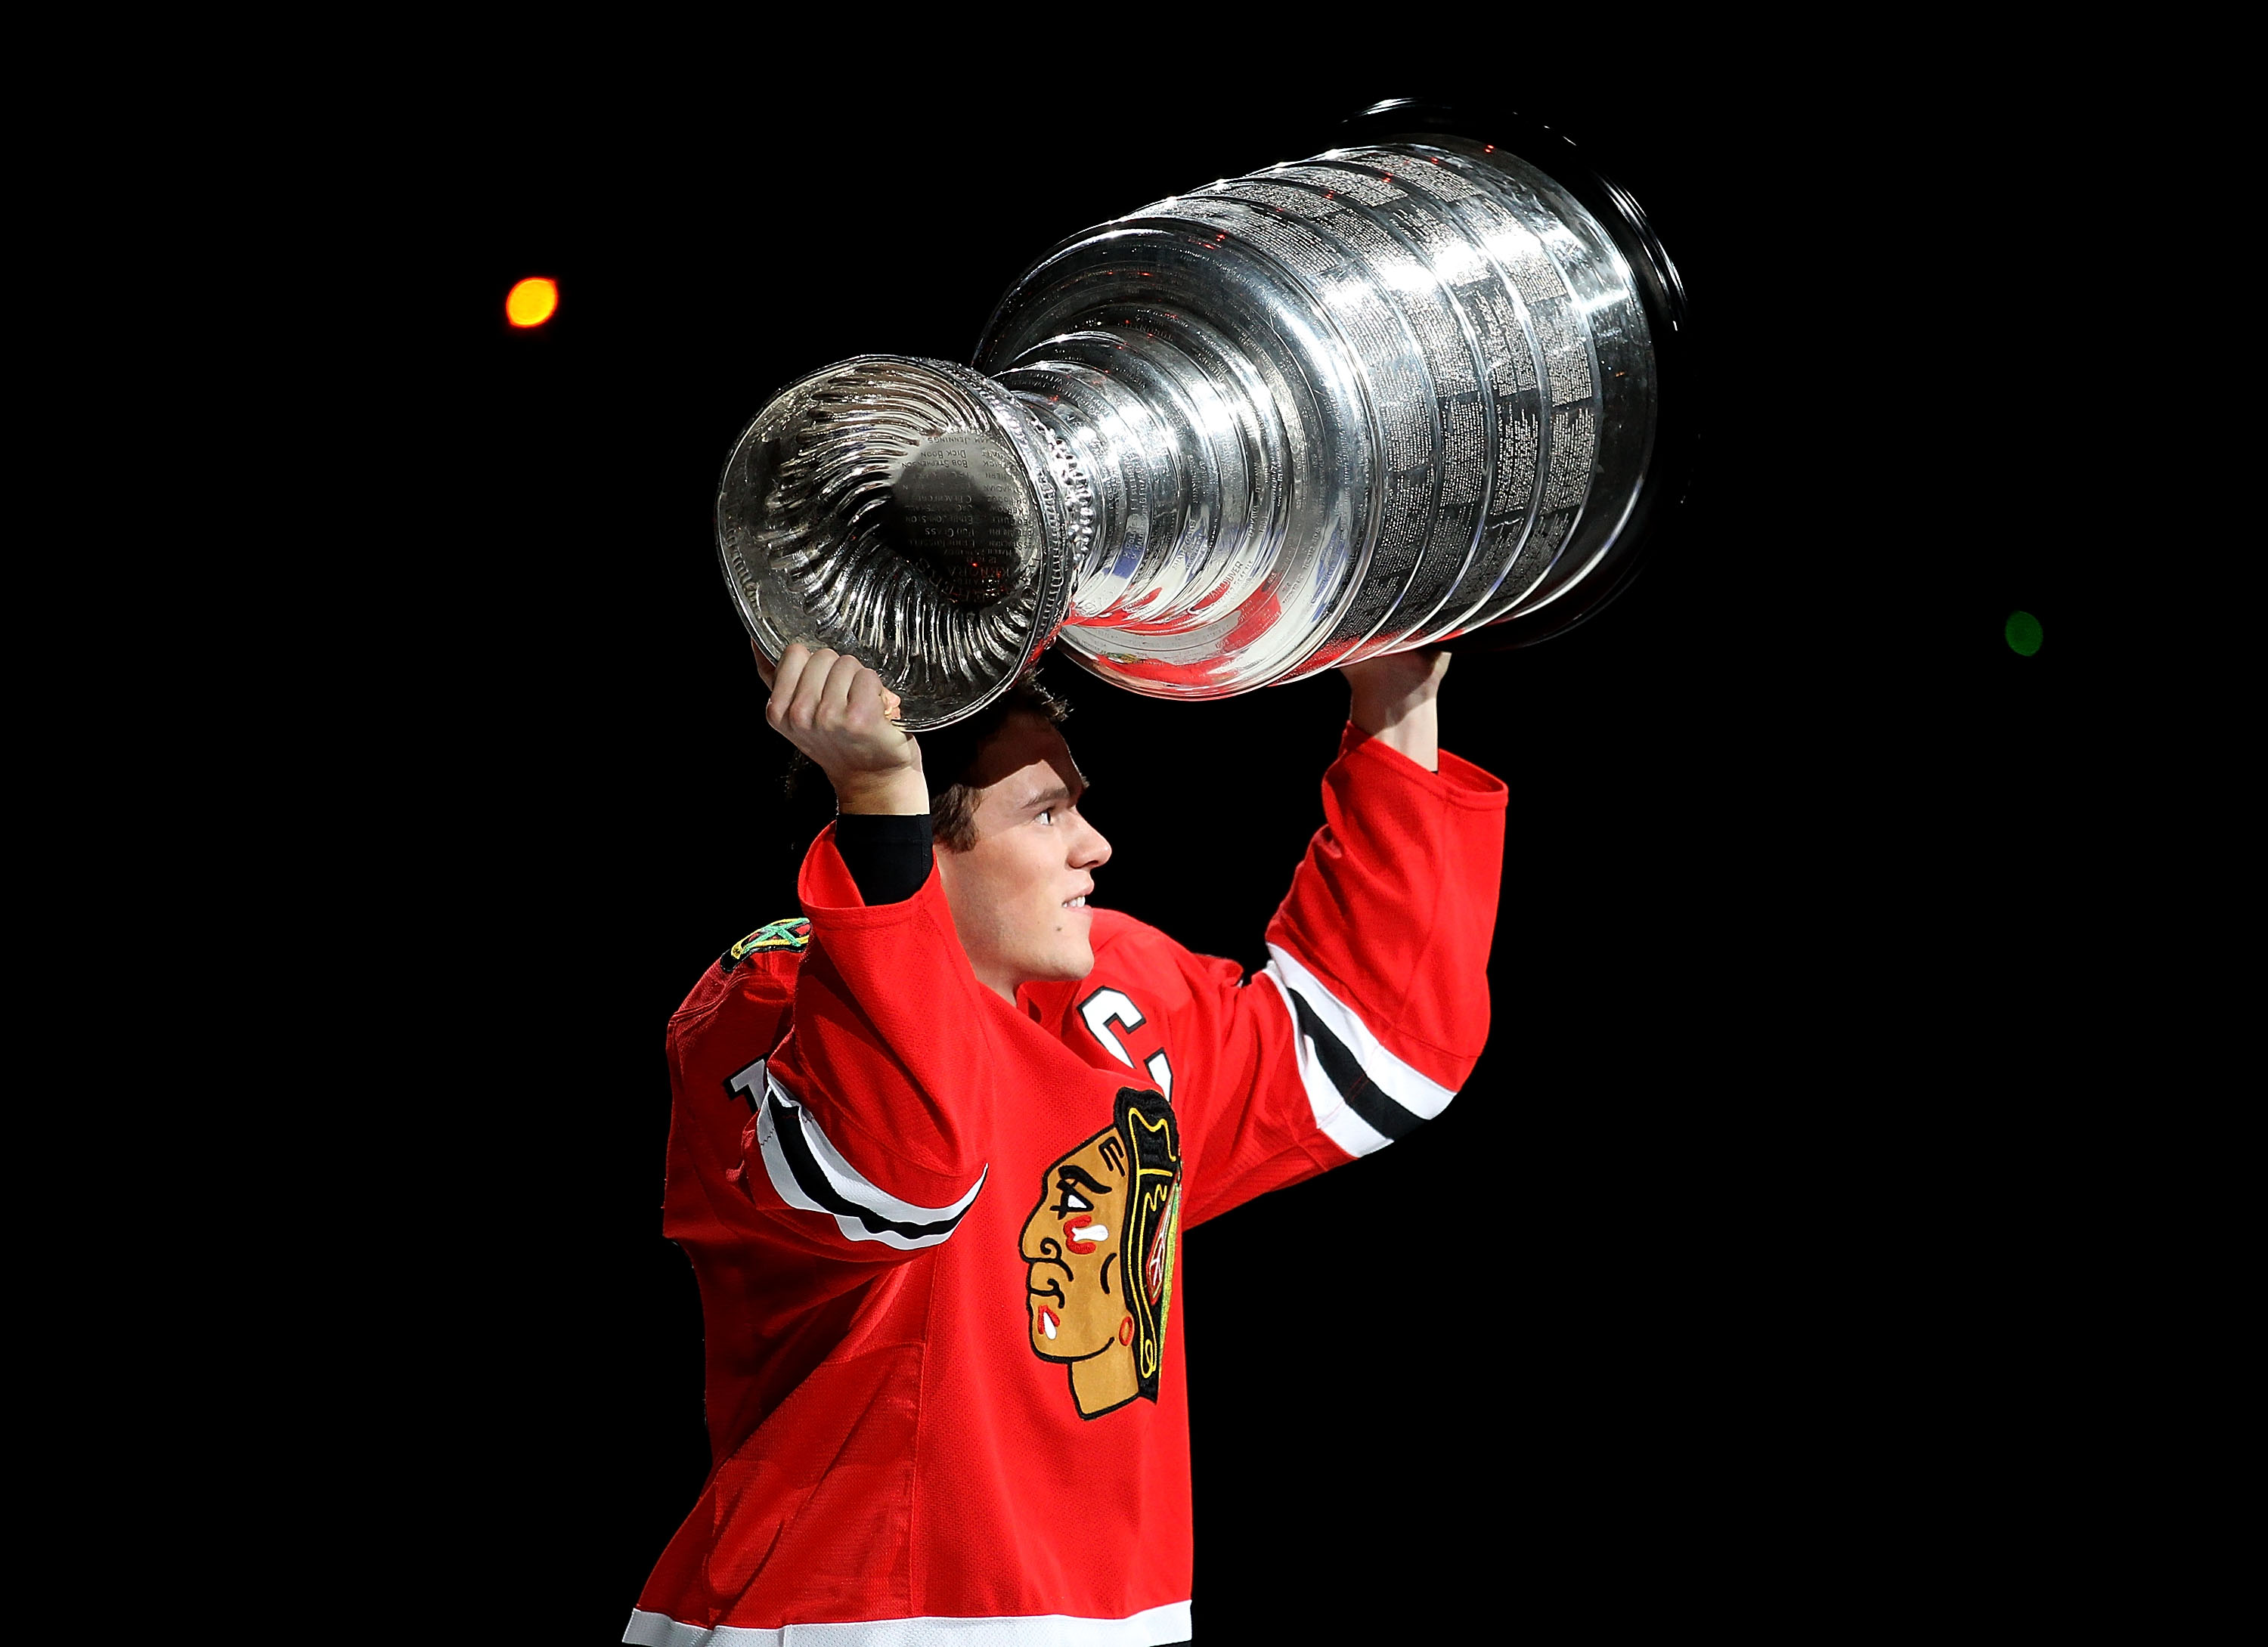 CHICAGO - OCTOBER 09: Jonathan Toews #19 of the Chicago Blackhawks carries the Stanley Cup trophy across the ice in a ceremony before the Blackhawks season home opening game against the Detroit Red Wings at the United Center on October 9, 2010 in Chicago,